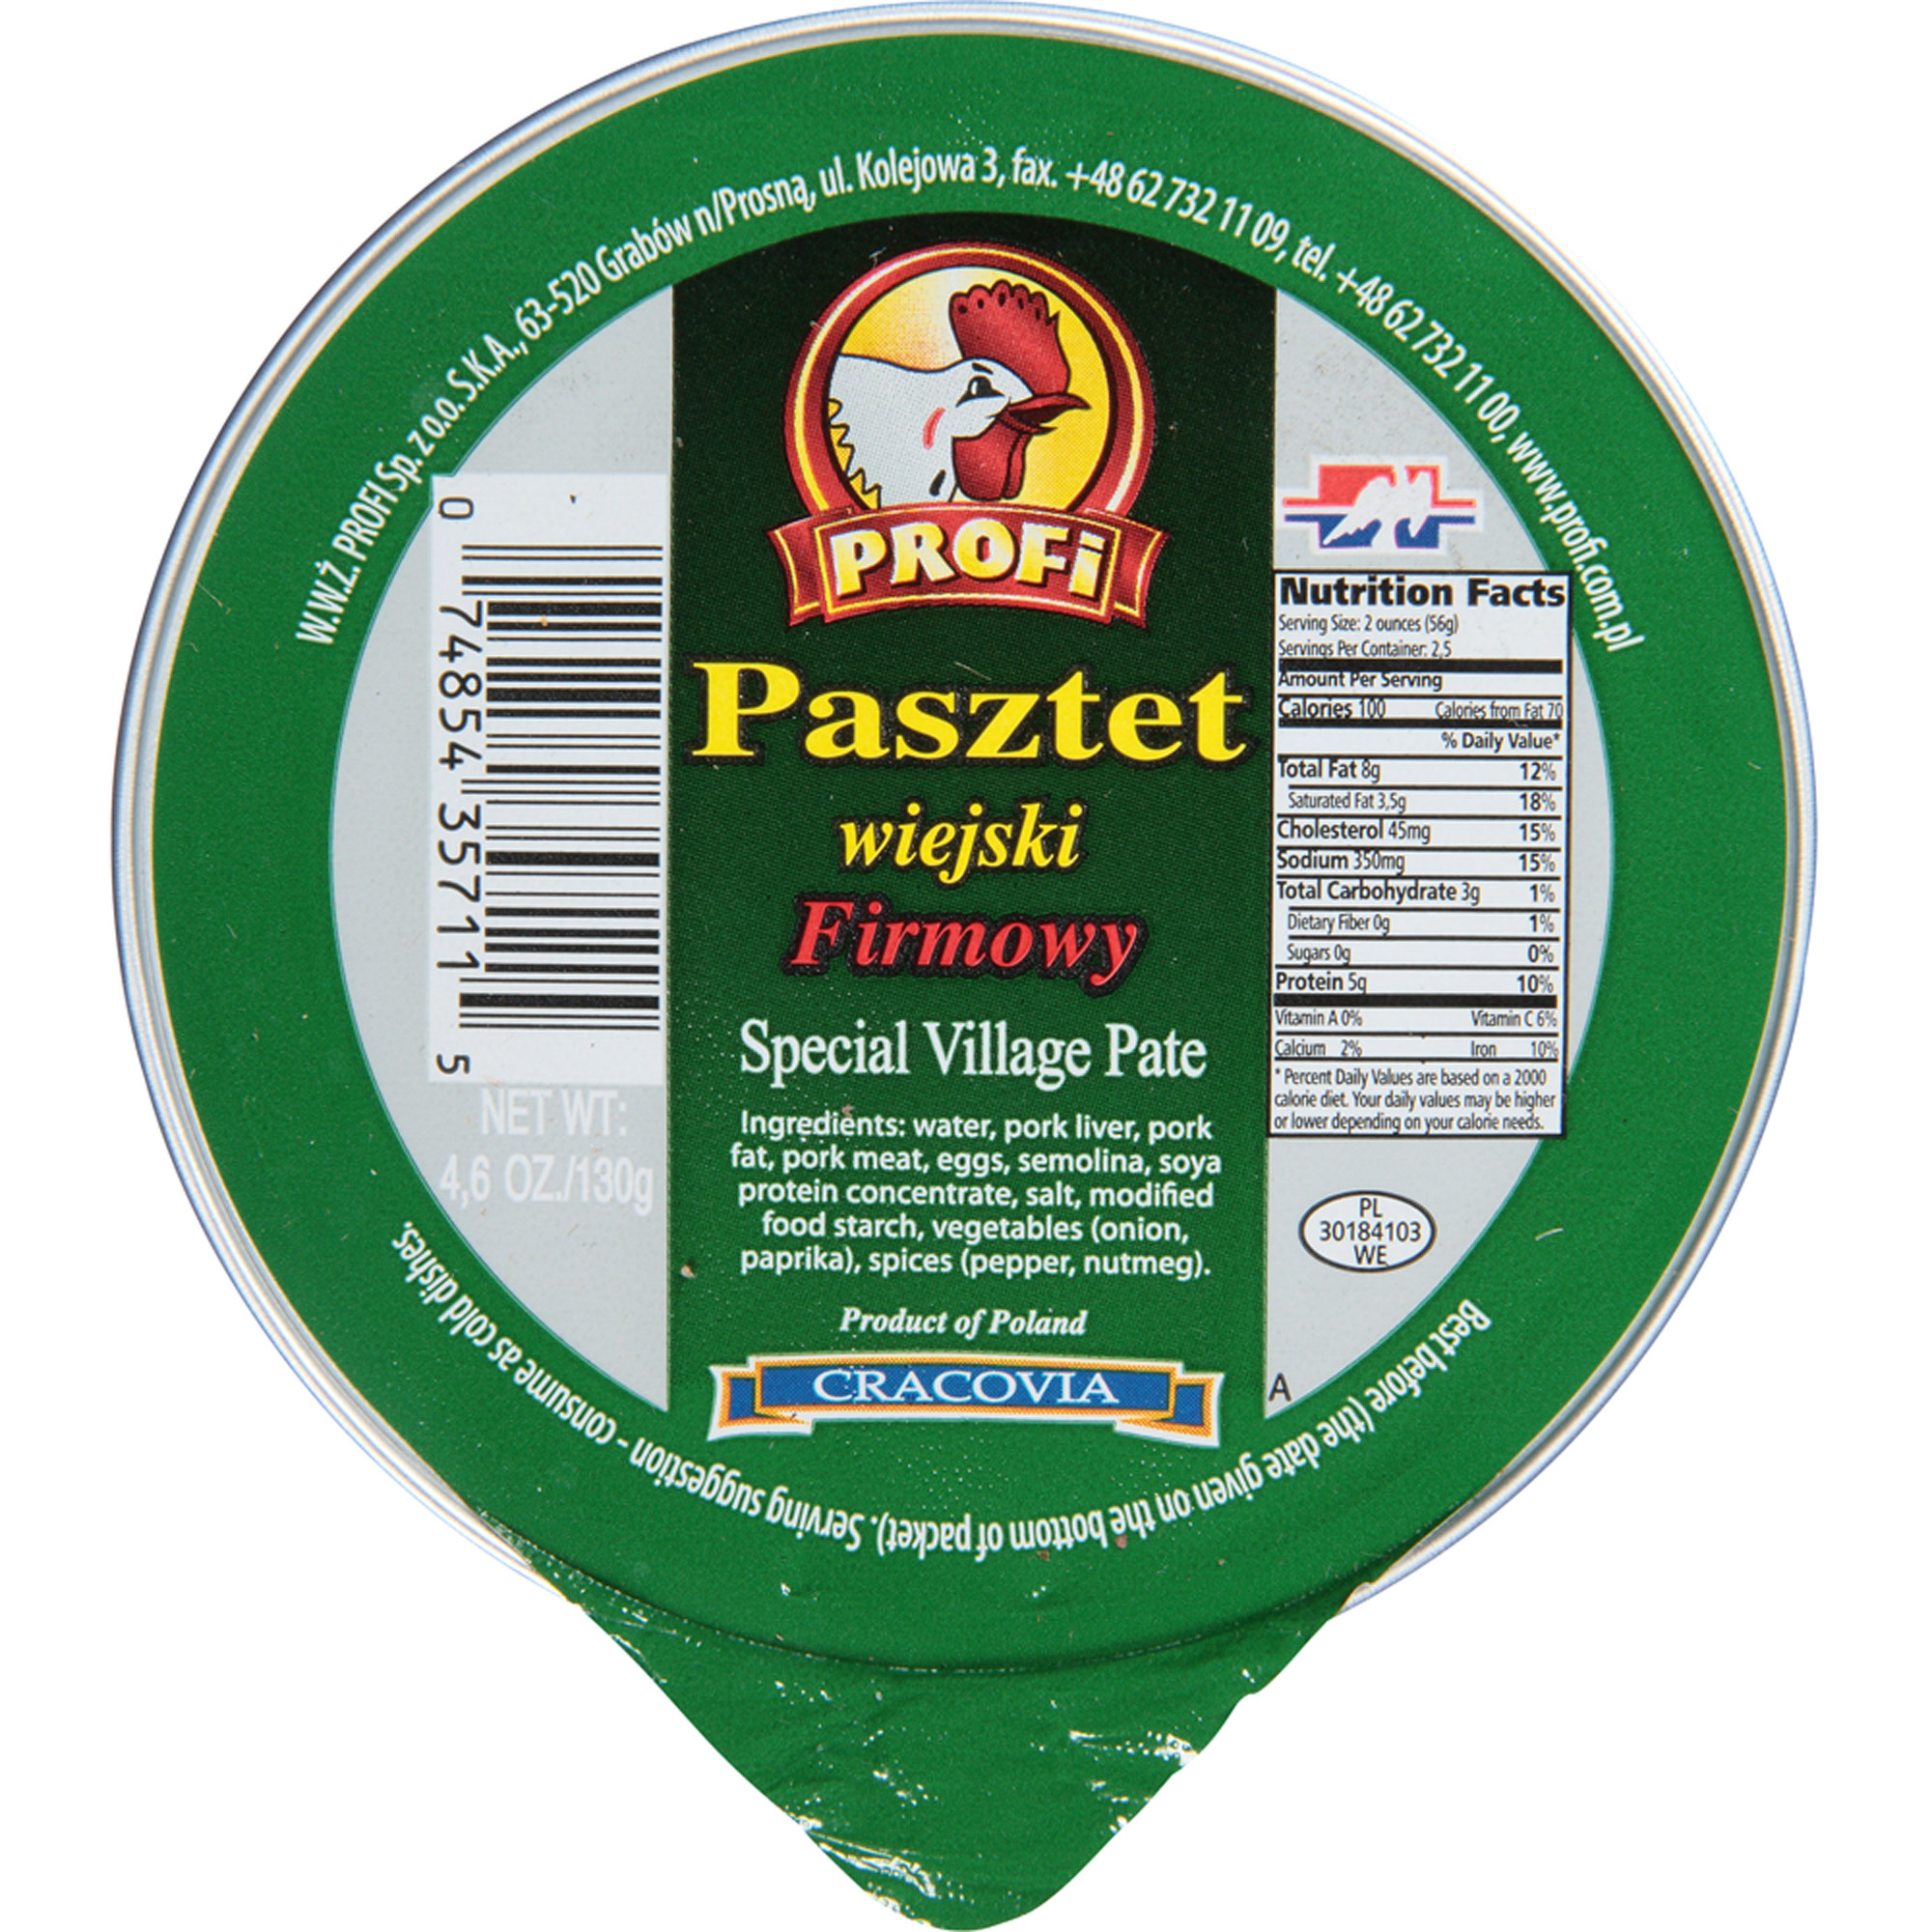 Profi Pasztet Firmowy Pate, 4.6 oz, (Pack of 12) by